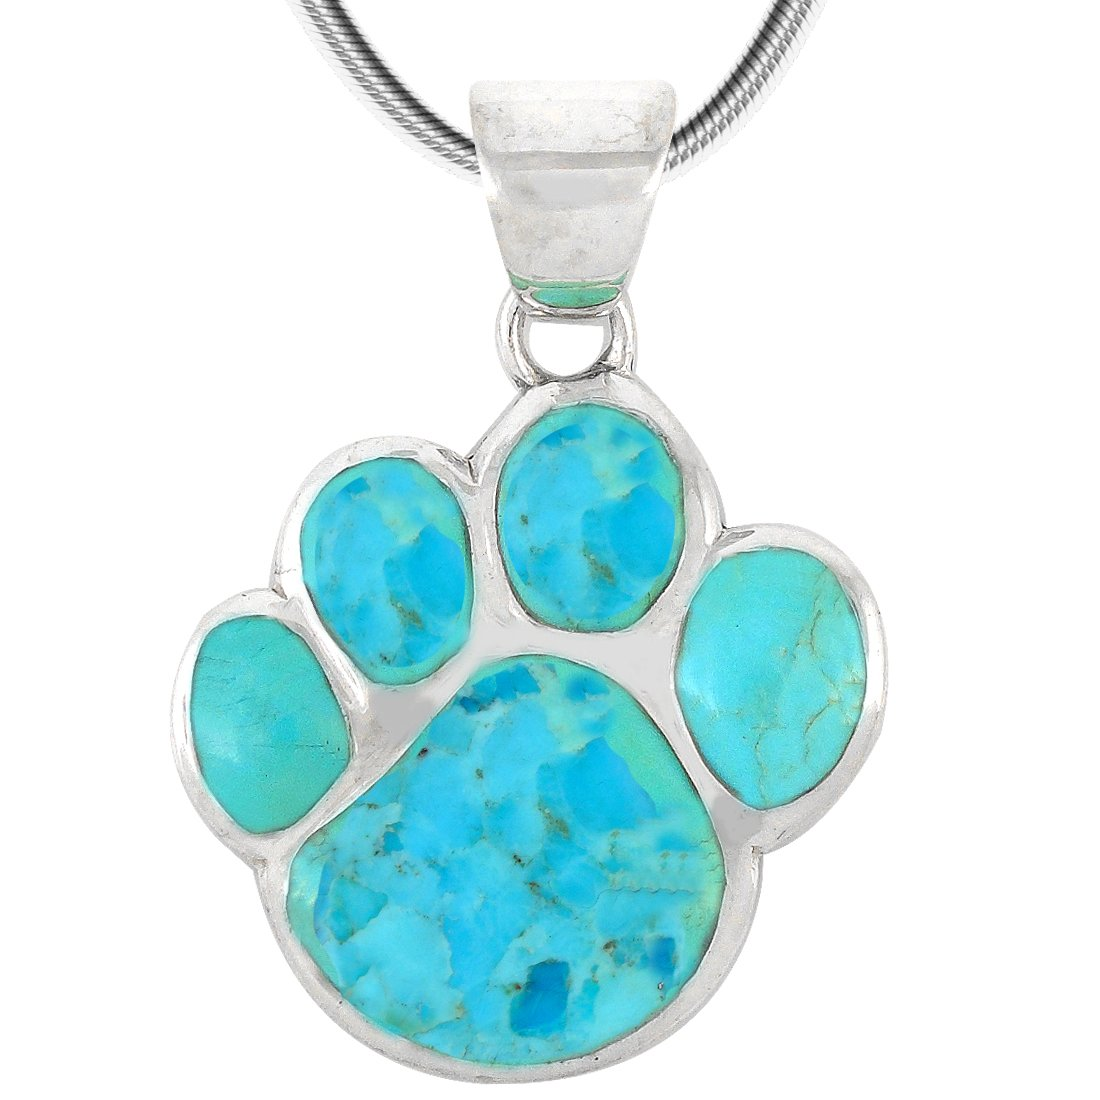 Dog Paw Pendant Necklace 925 Sterling Silver & Genuine Turquoise (20'', Turquoise)